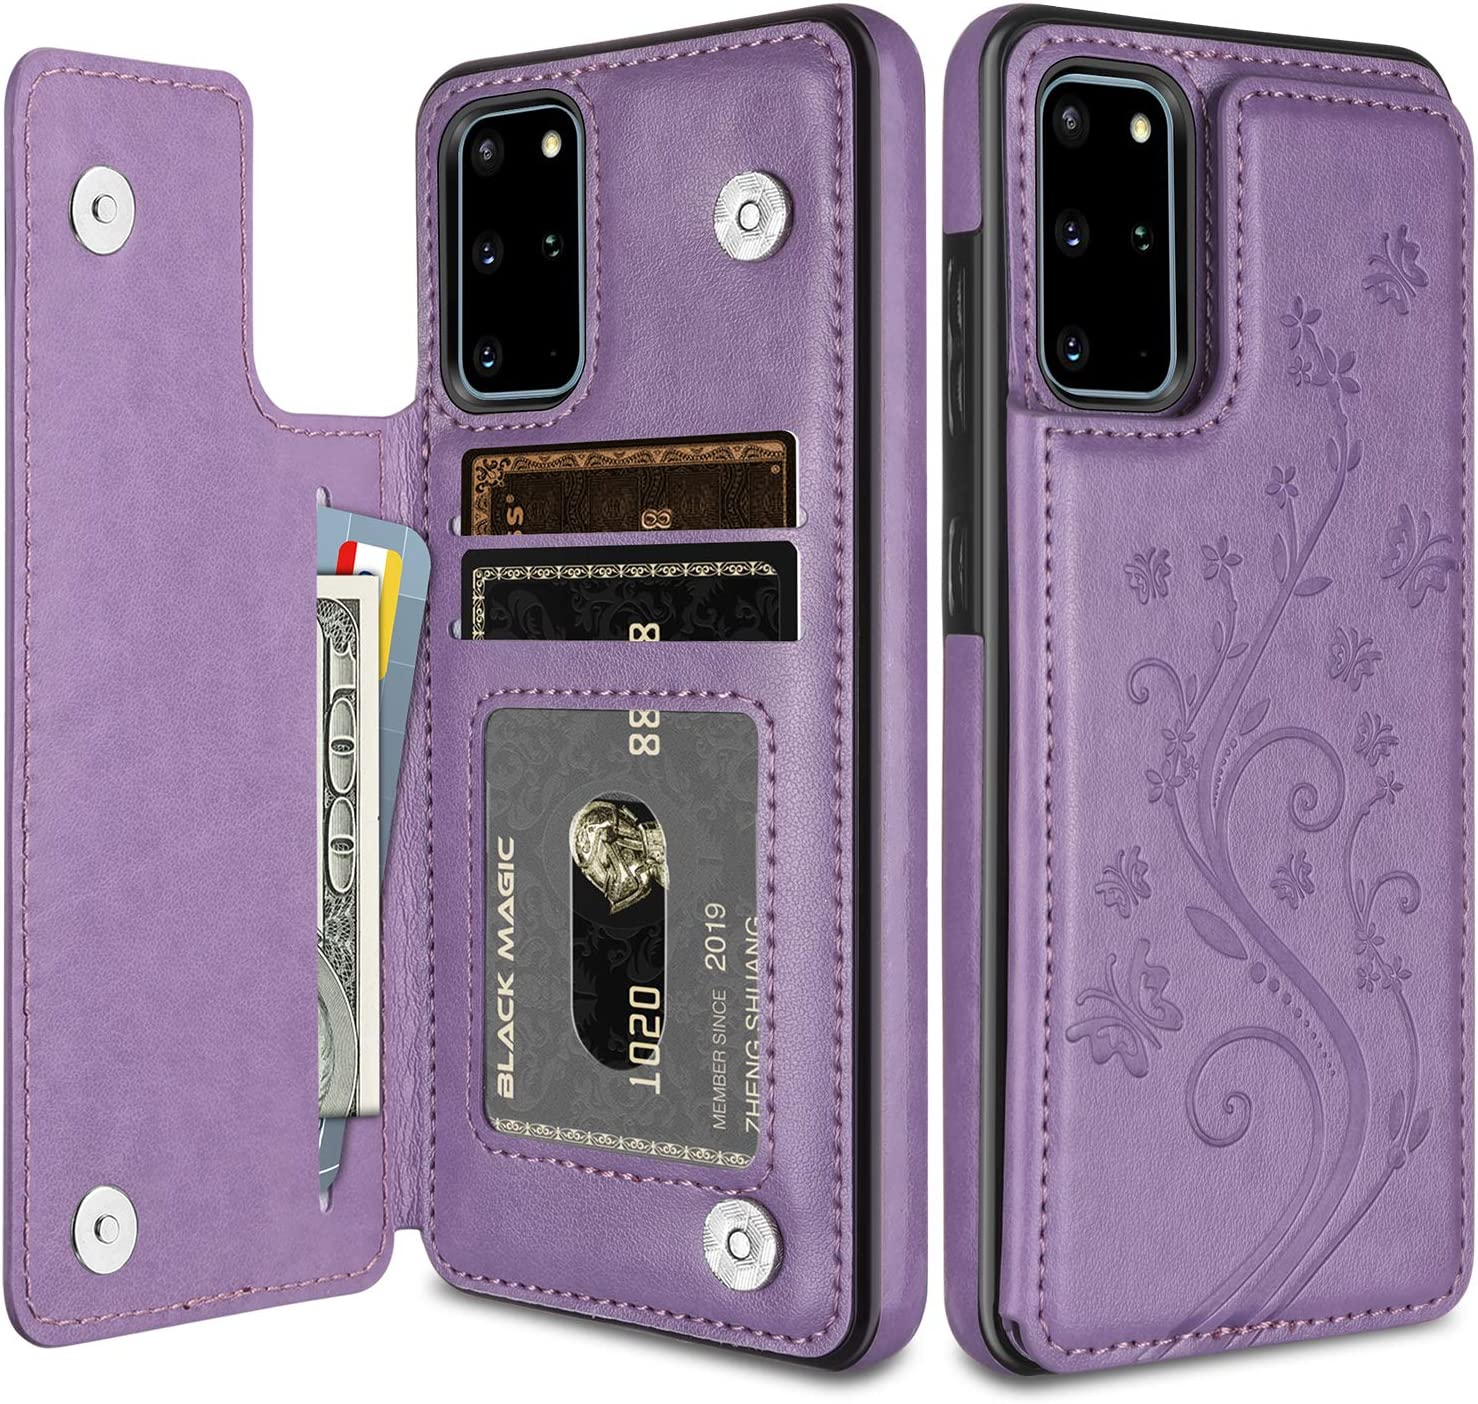 HianDier Wallet Case for Galaxy S20 Plus Slim Protective Case with Credit Card Slot Holder Flip Folio Soft PU Leather Magnetic Closure Cover for Samsung Galaxy S20+ Plus 6.7 Inch, Butterfly Purple